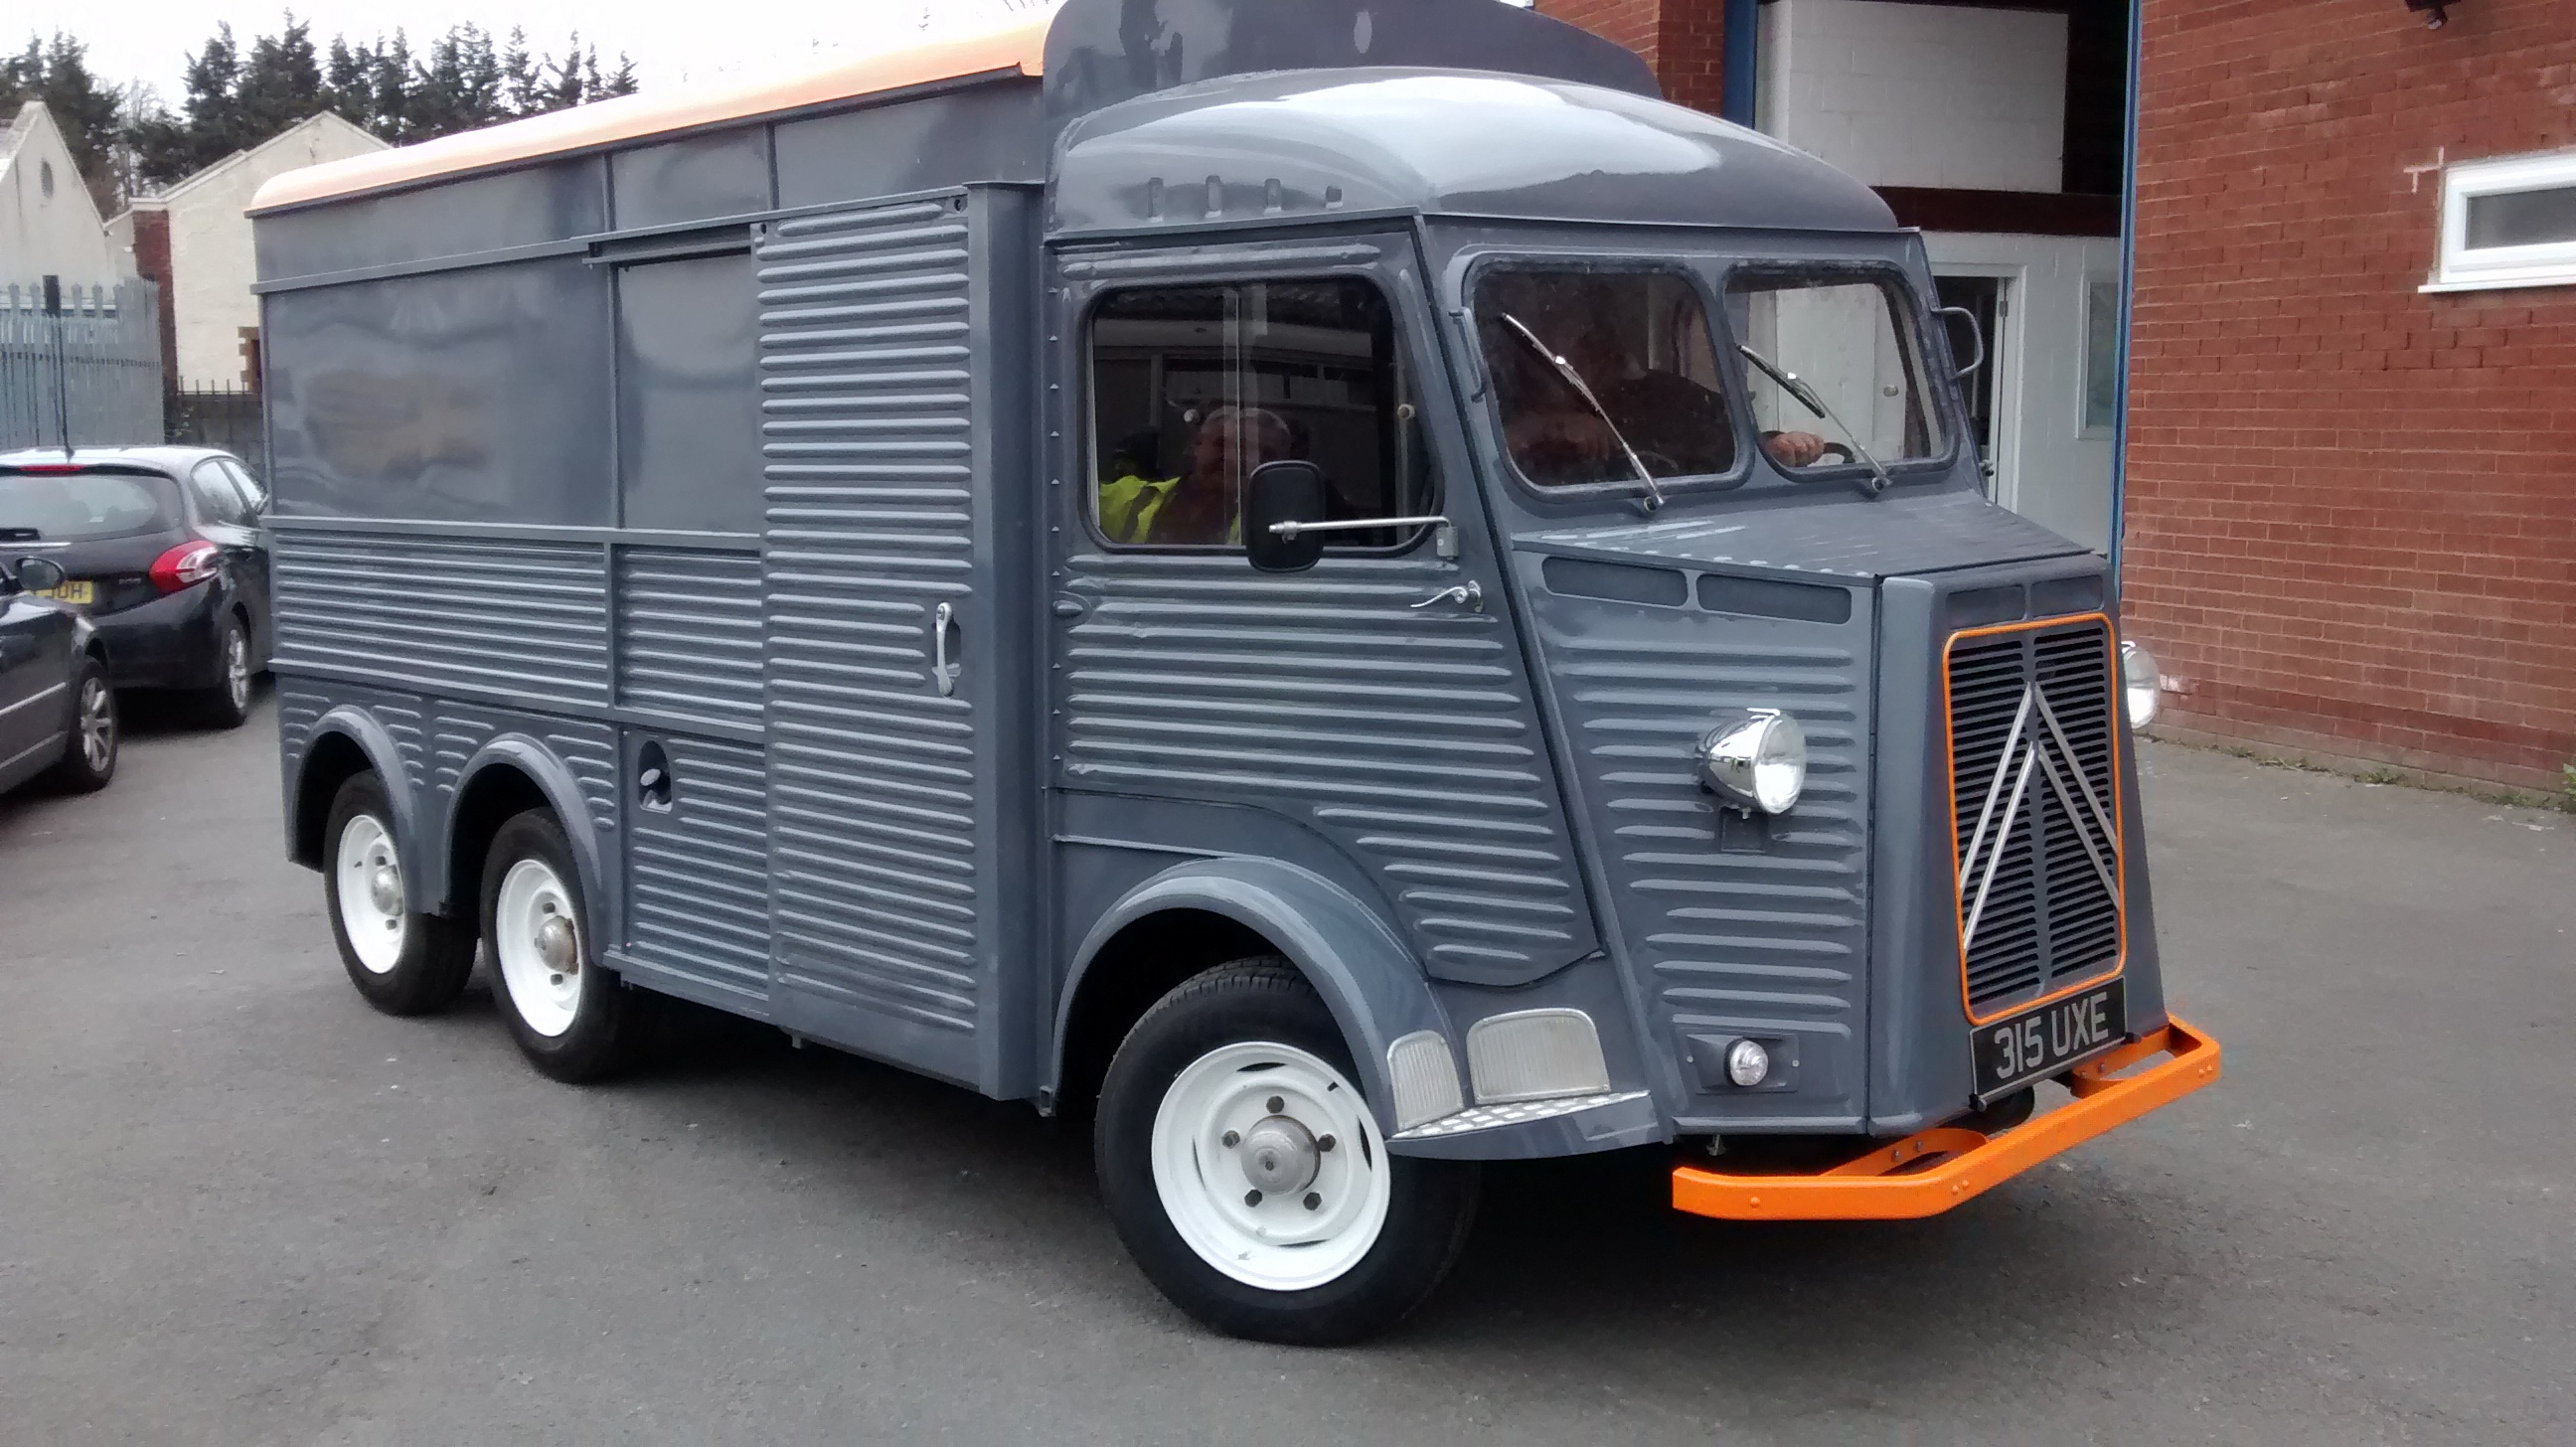 Citroen H Van Wiring Diagram Free Download Diagrams Rd4 How To Wire Your Camper Conversion The Professional Way And Save Money On Hy